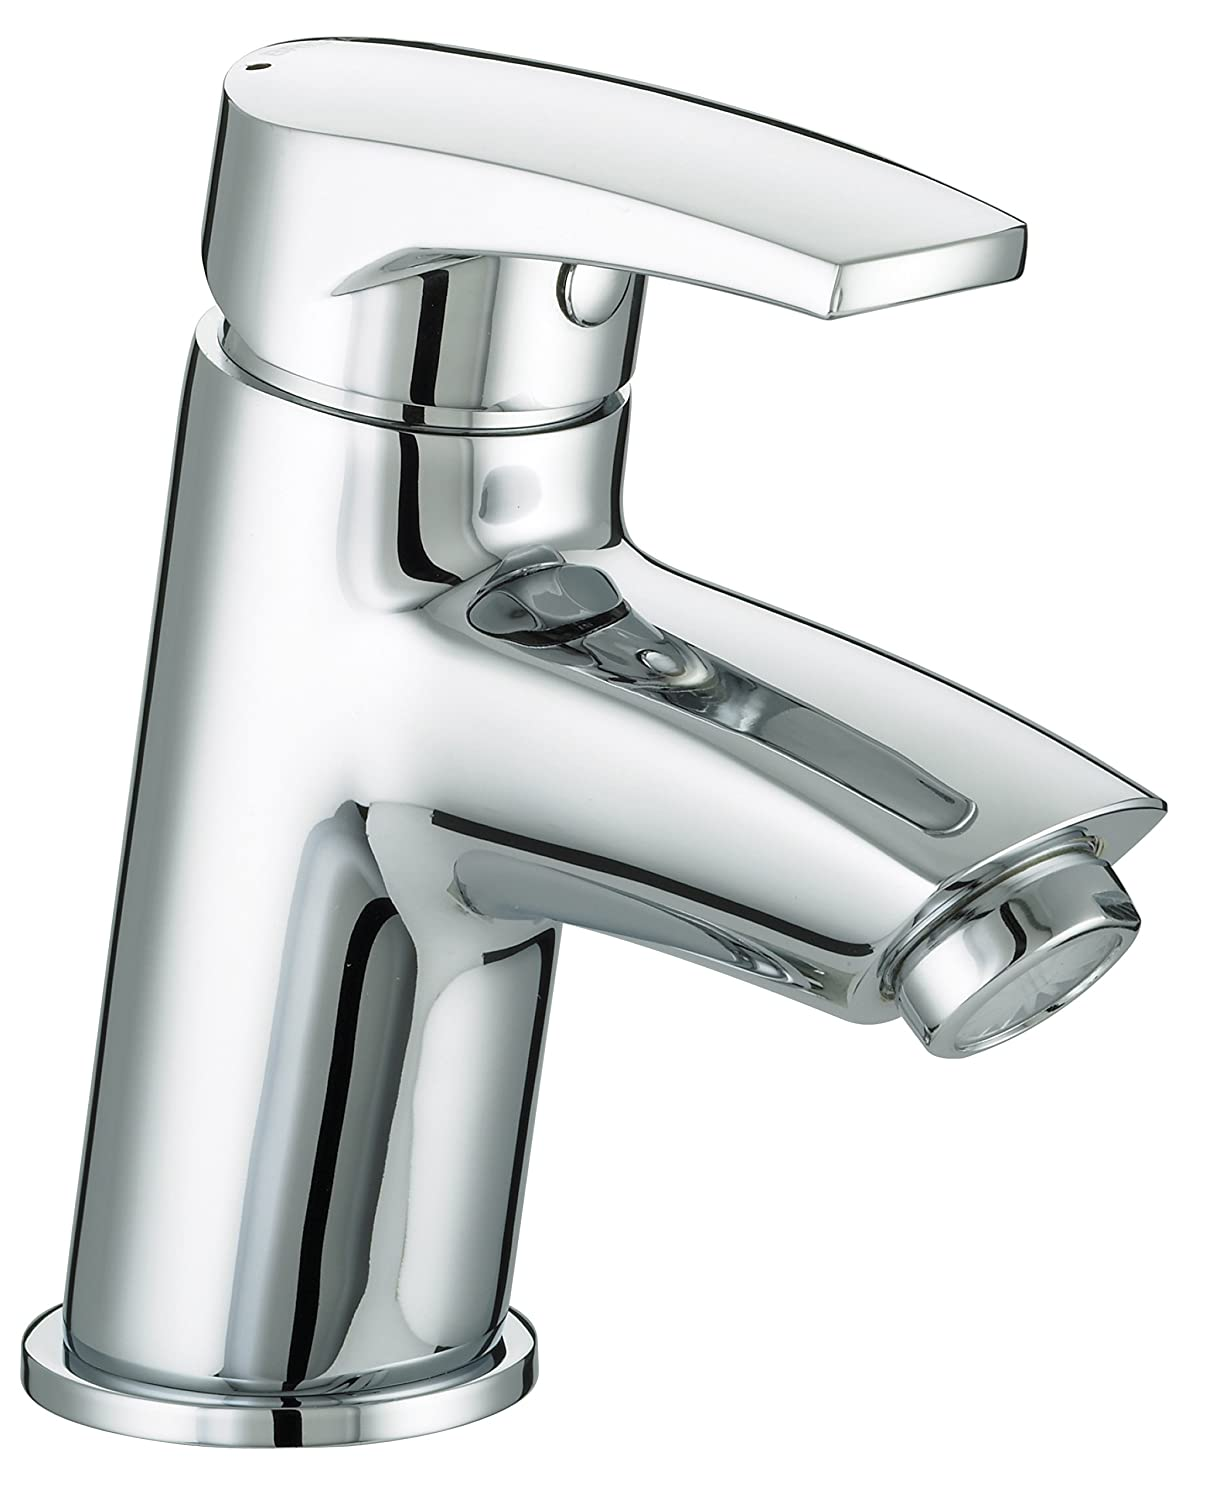 Chrome Plated Bristan OR BAS C Orta Basin Mixer with Clicker Waste